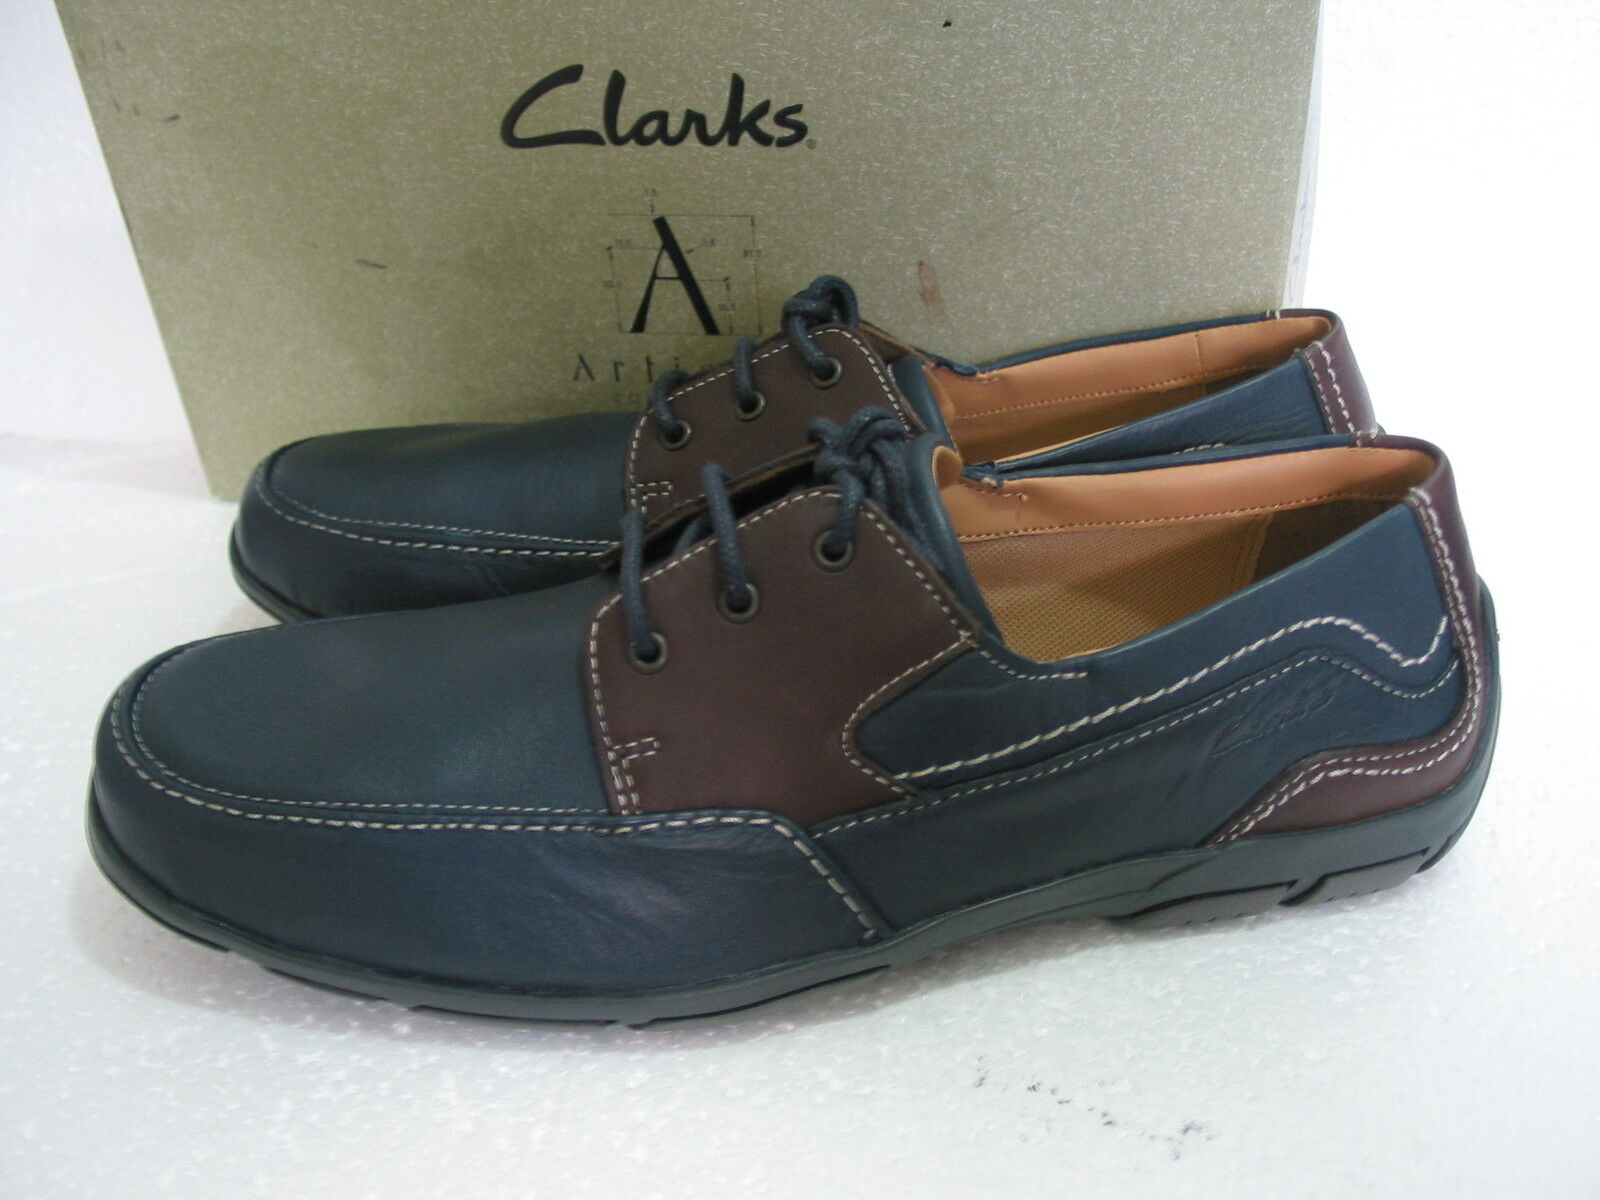 NEW MENS CLARKS EXTRA LEATHER LIGHT LATCH BAY NAVY LEATHER EXTRA SHOES SIZE 7 & 8 & 9 f63793